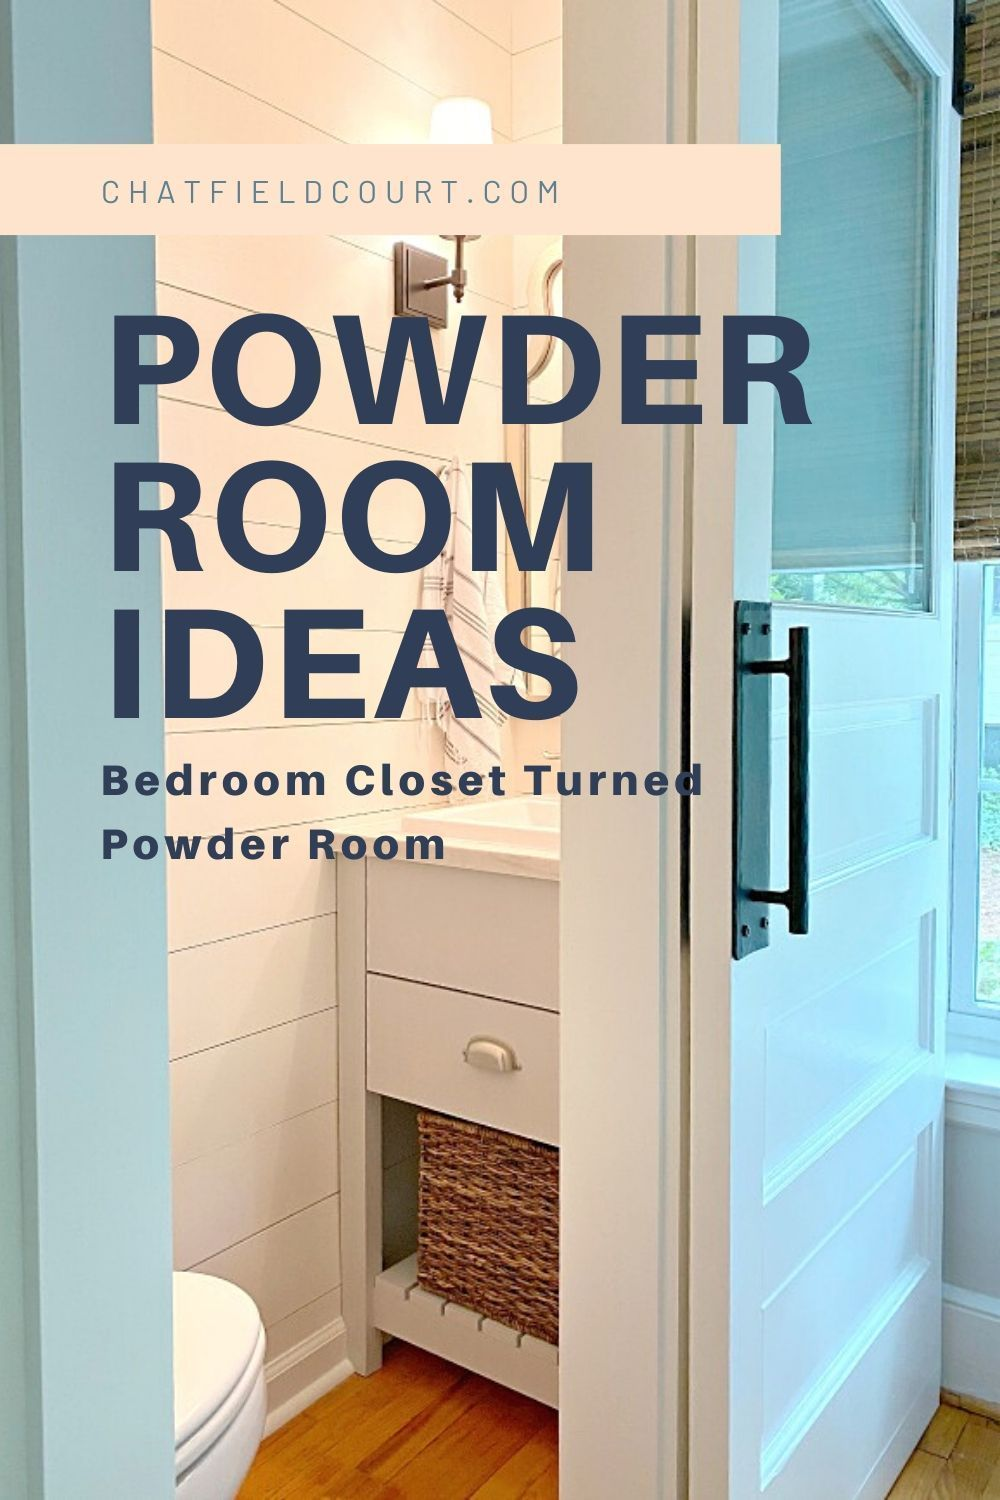 A guest bedroom closet turned into a small powder room with a DIY vanity, shiplap walls and a trash-picked farmhouse door.